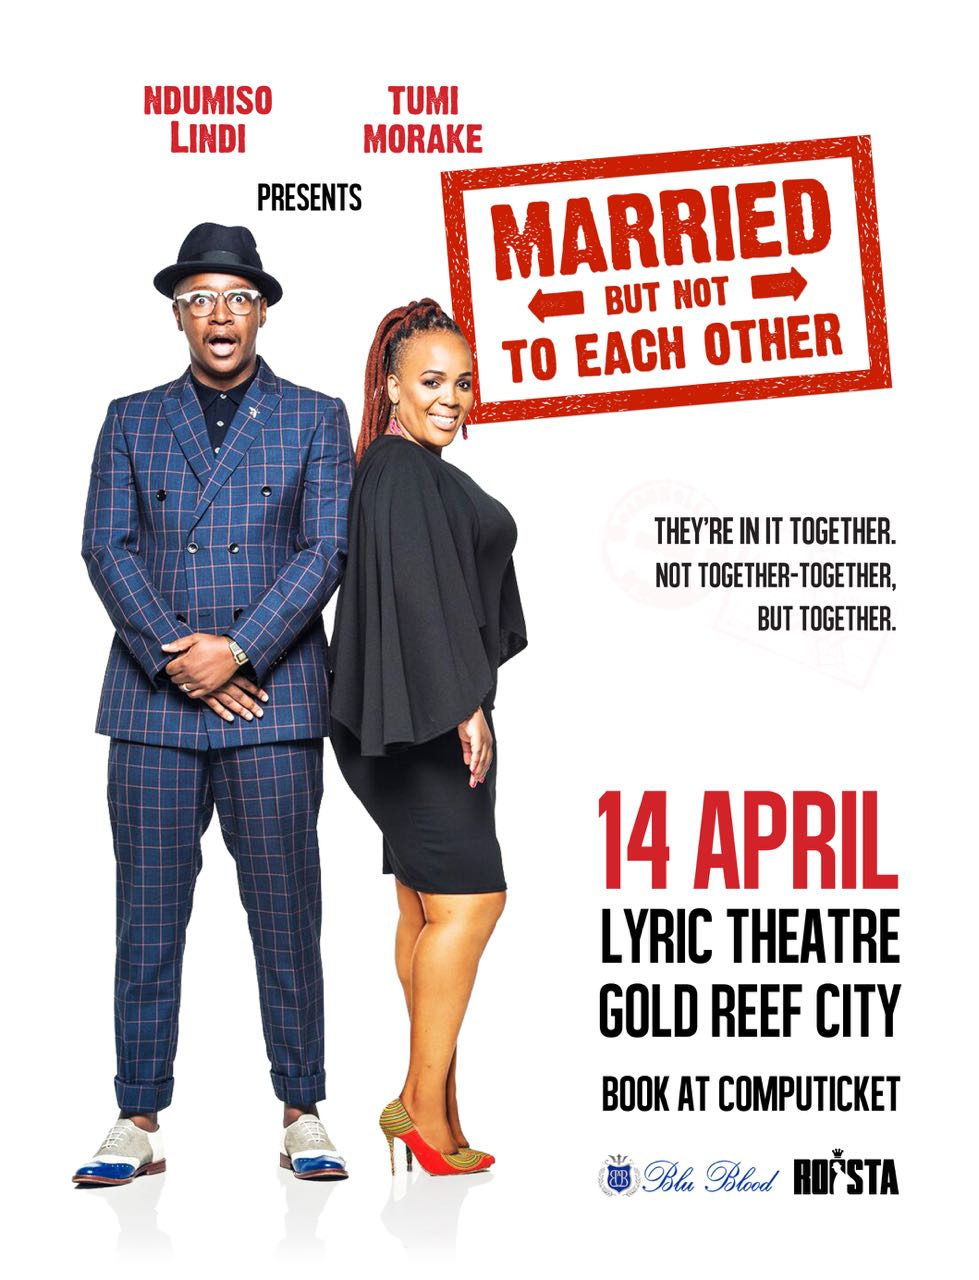 Ndumiso Lindi & Tumi Morake are Married   But Not To Each